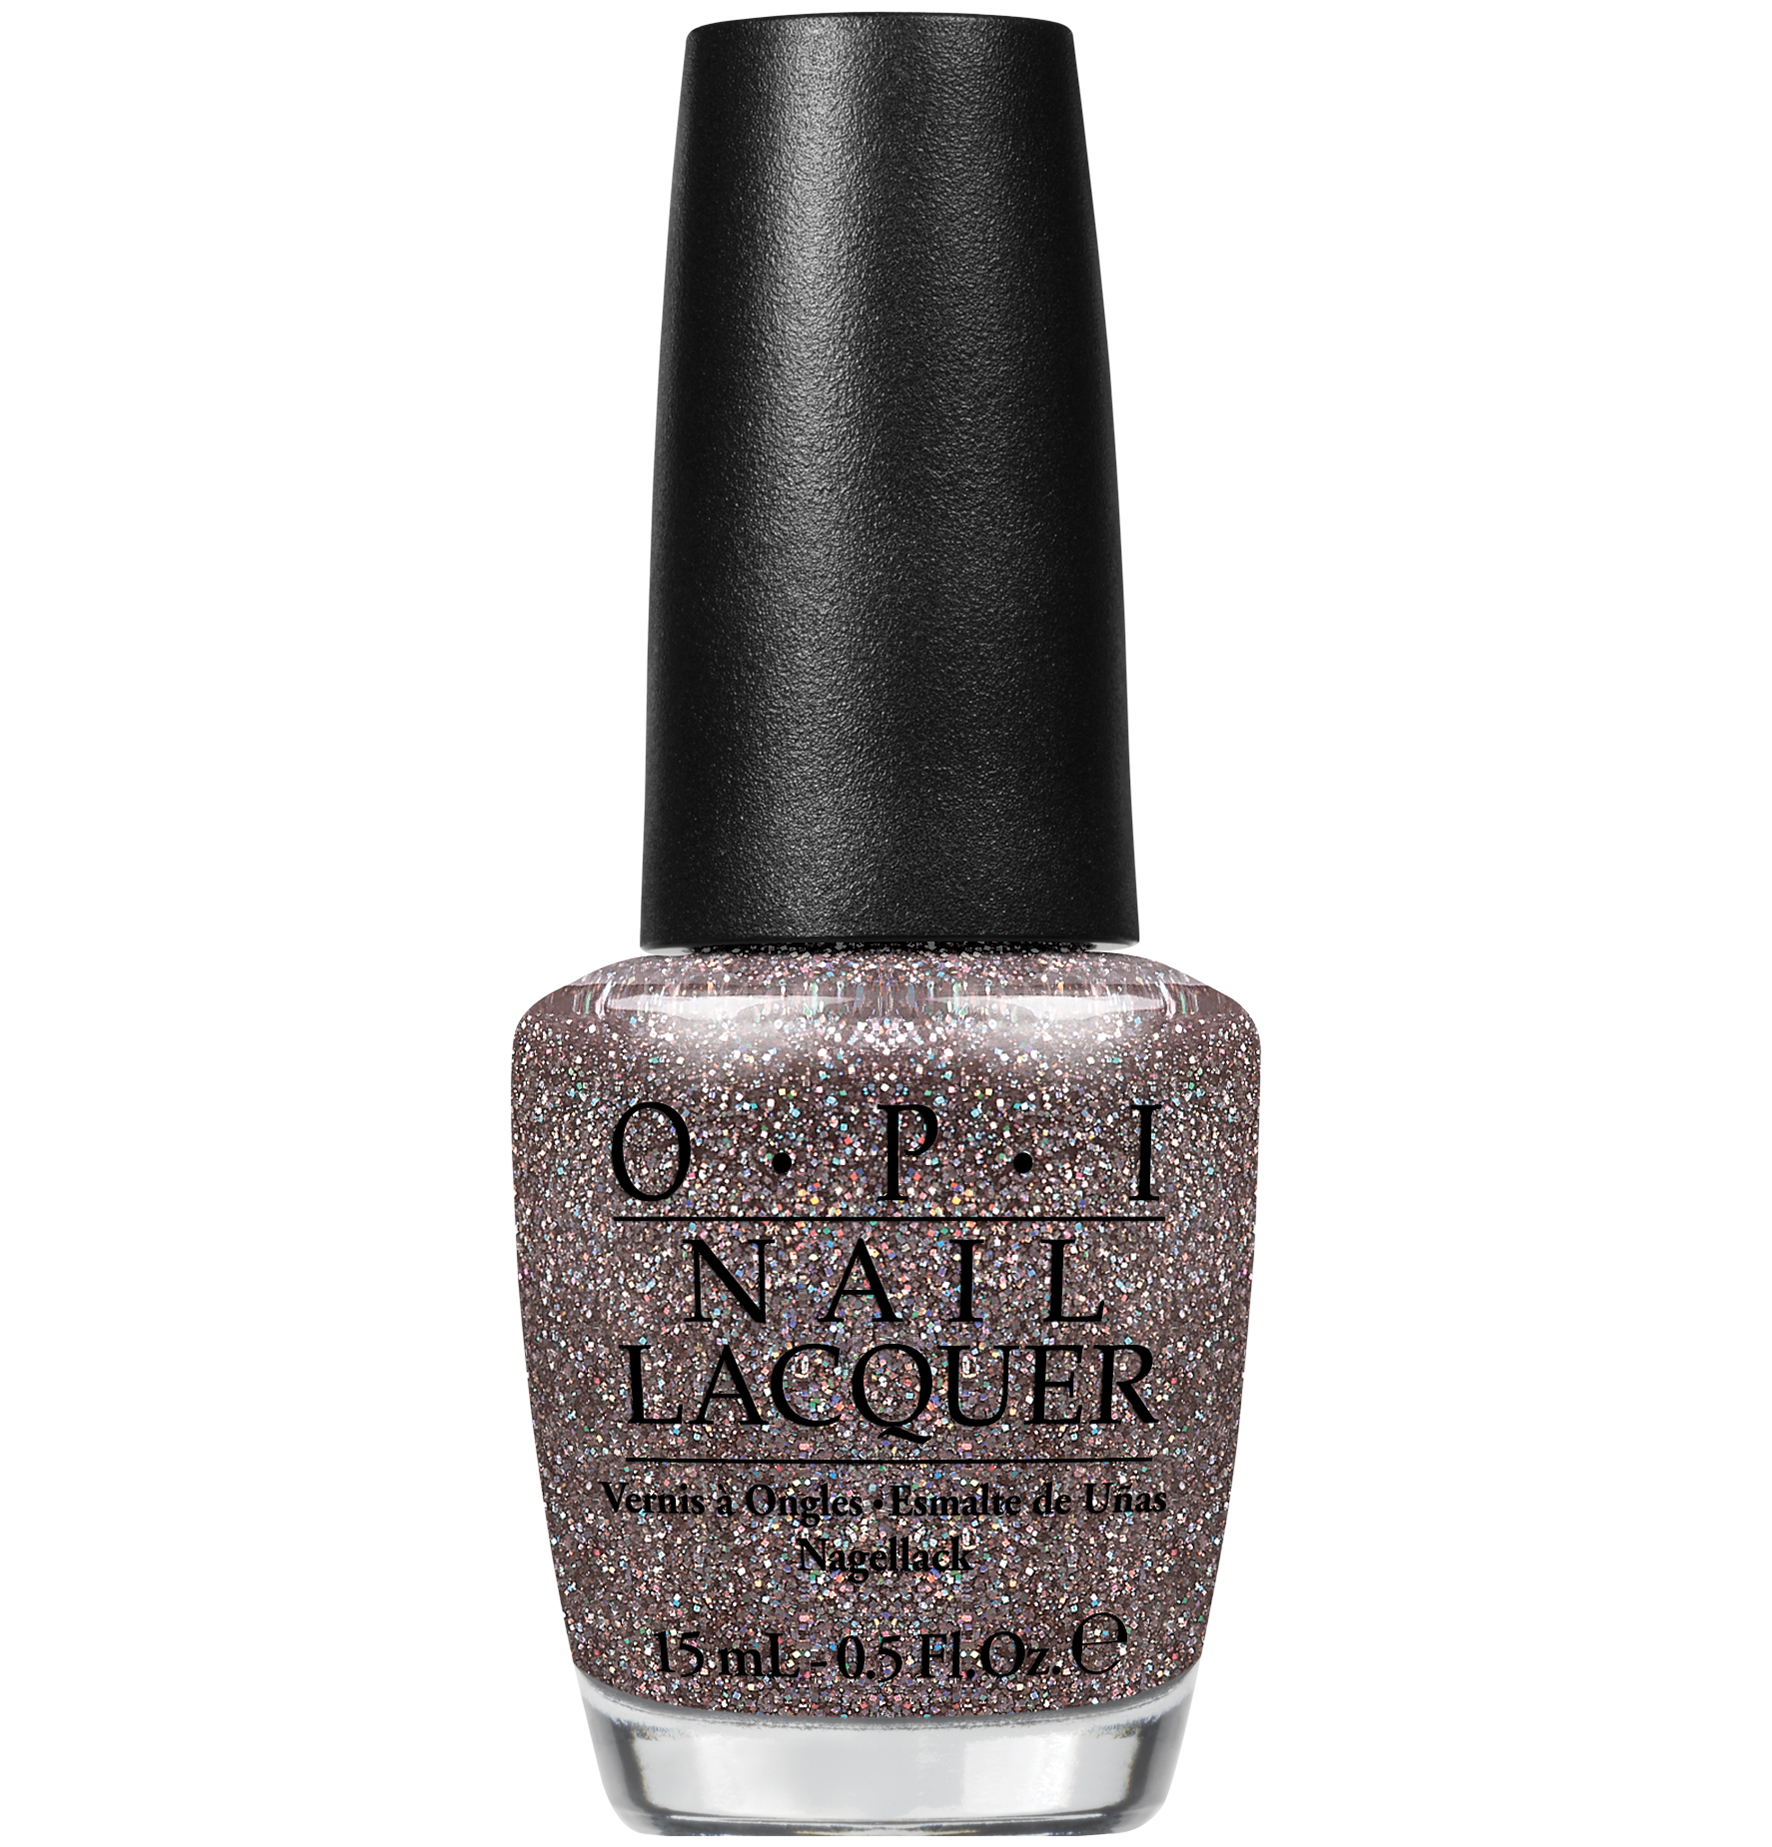 OPI Nail Lacquer - My Voice is a Little Norse 15ml - Miisee